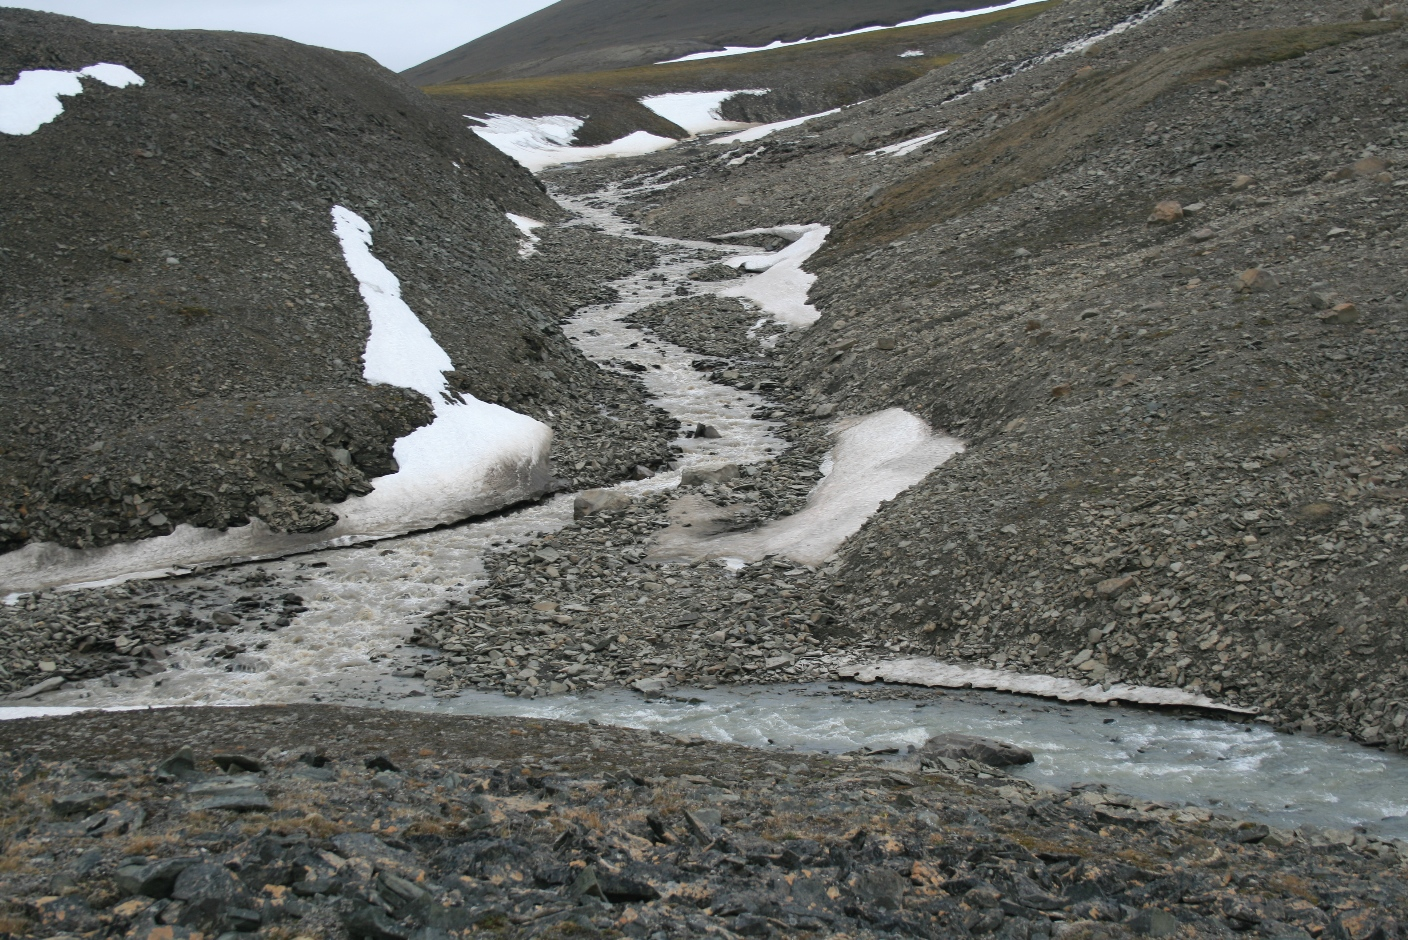 Confluence of 'glaciated' and 'non-glaciated water', note the colour difference!